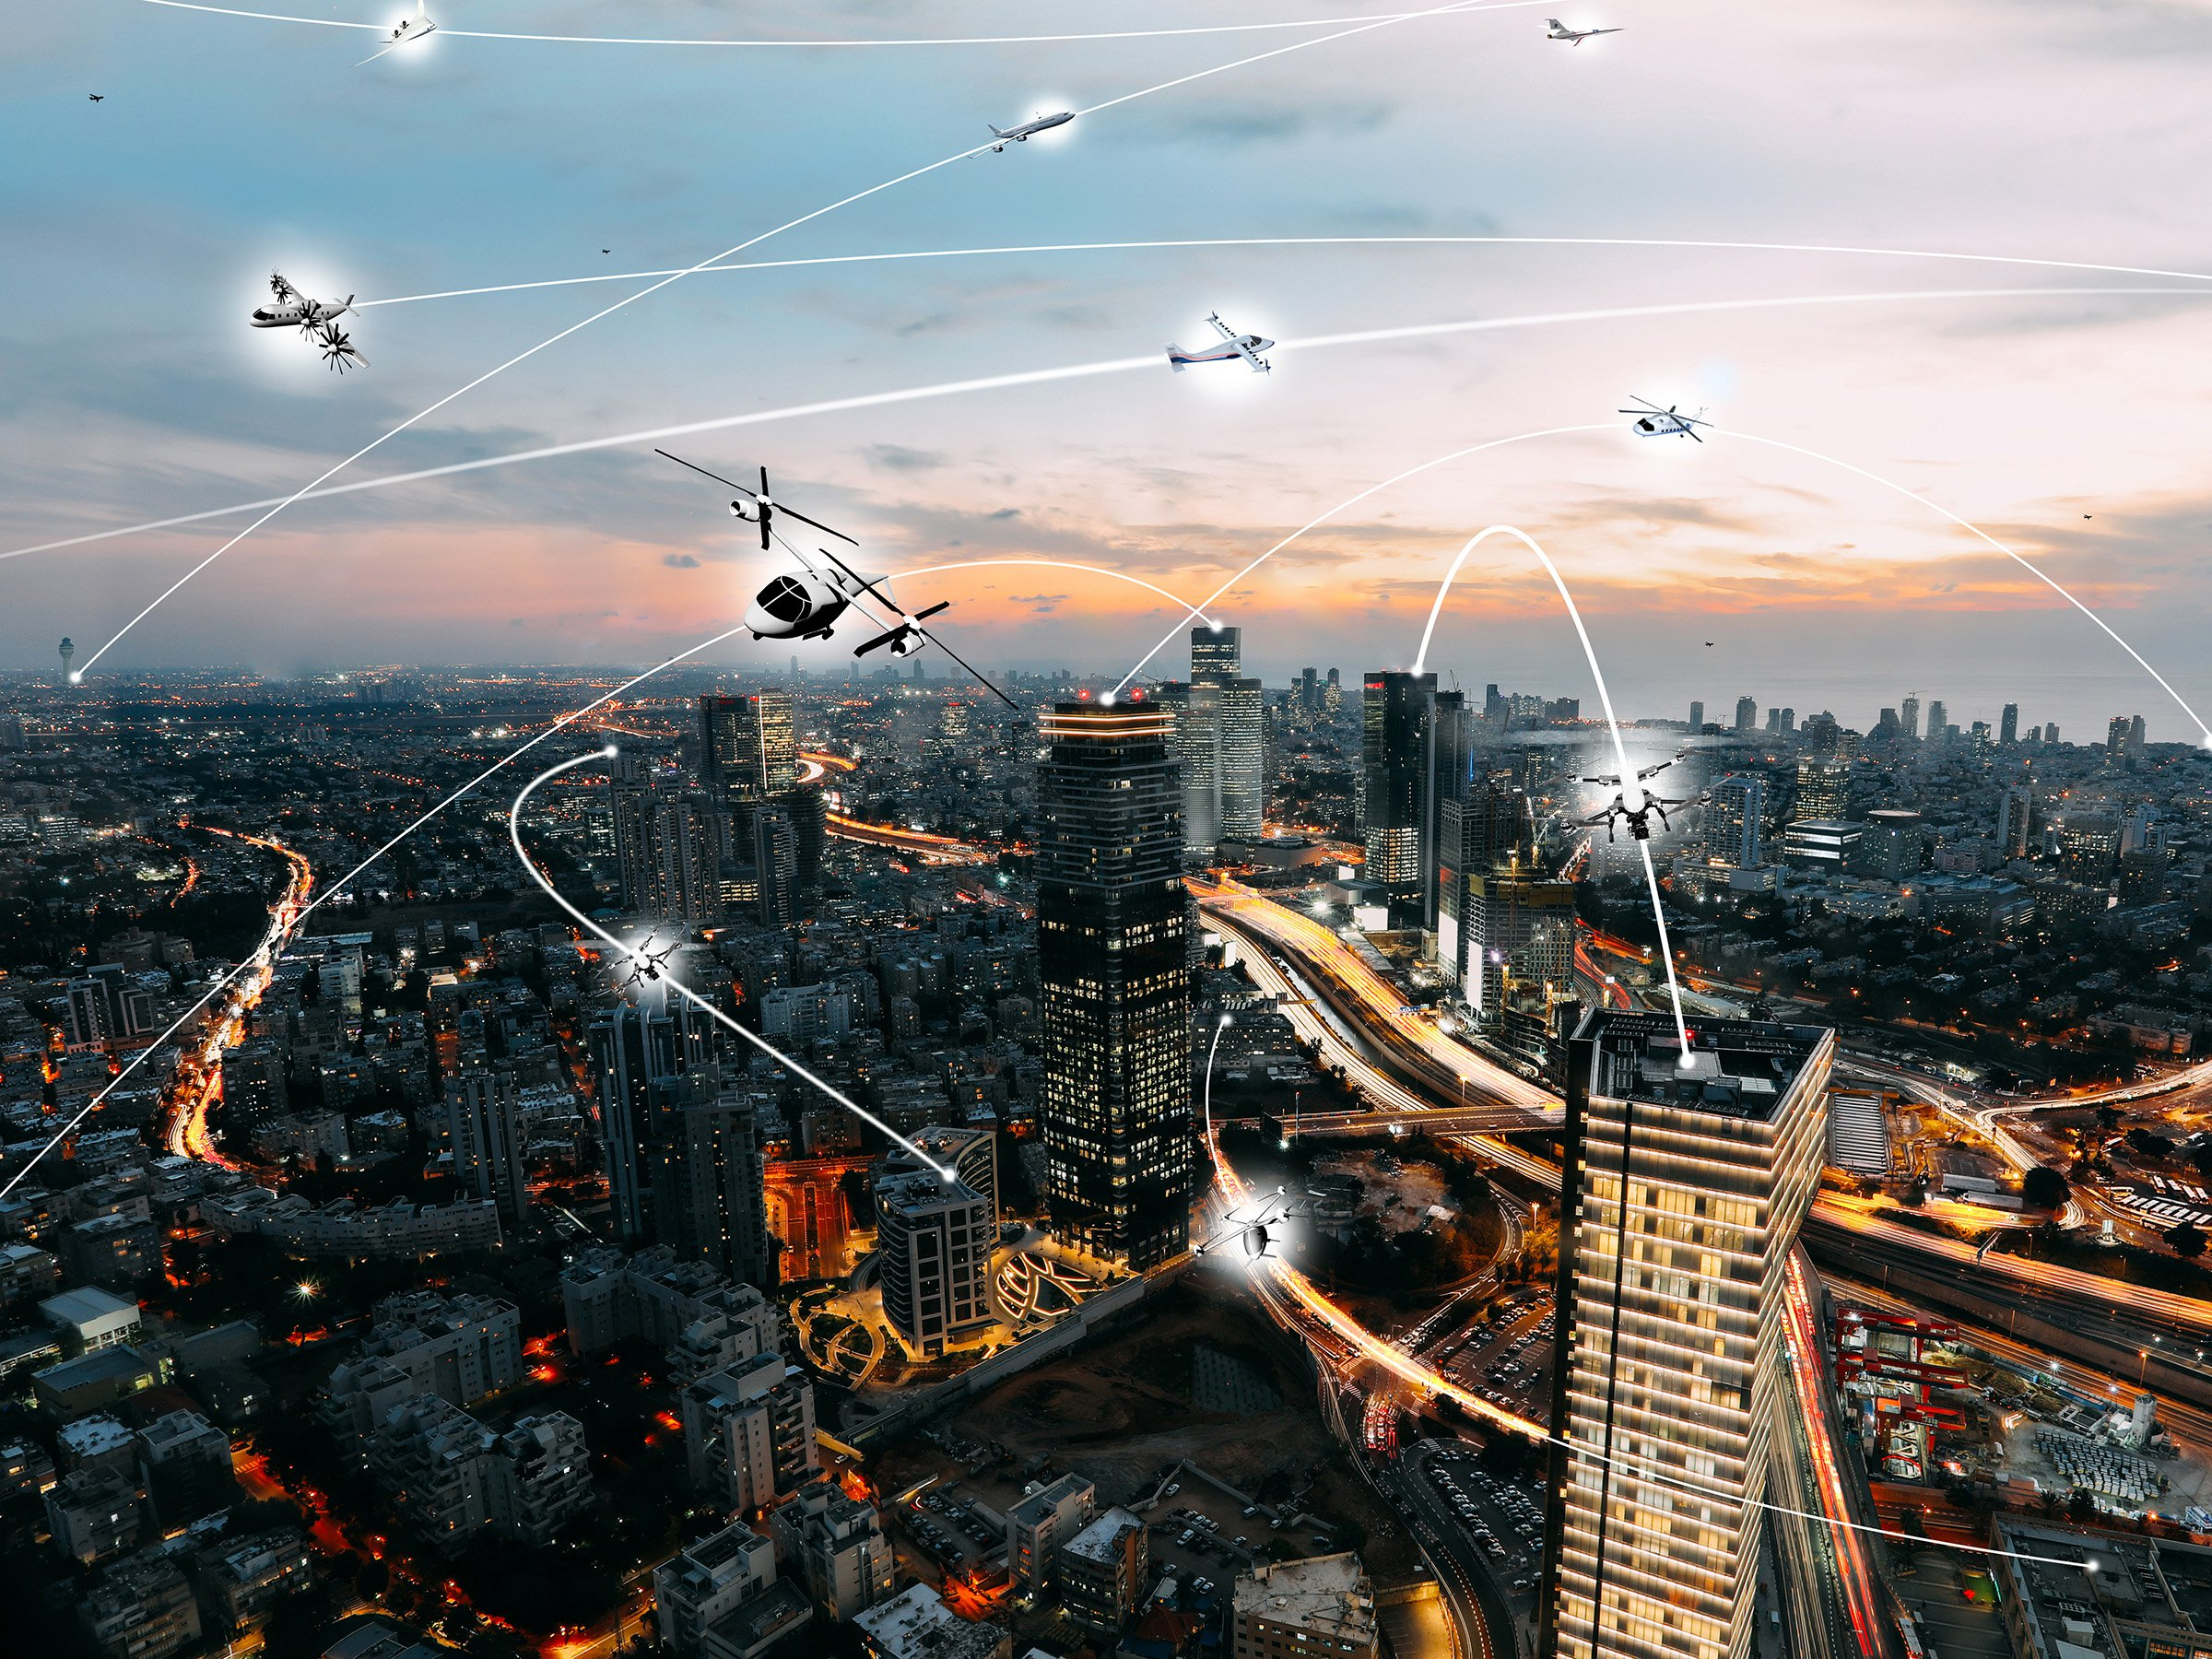 An artist?s conception of an urban air mobility environment, where air vehicles with a variety of missions and with or without pilots, are able to interact safely and efficiently. (Picture: Lillian Gipson/NASA)